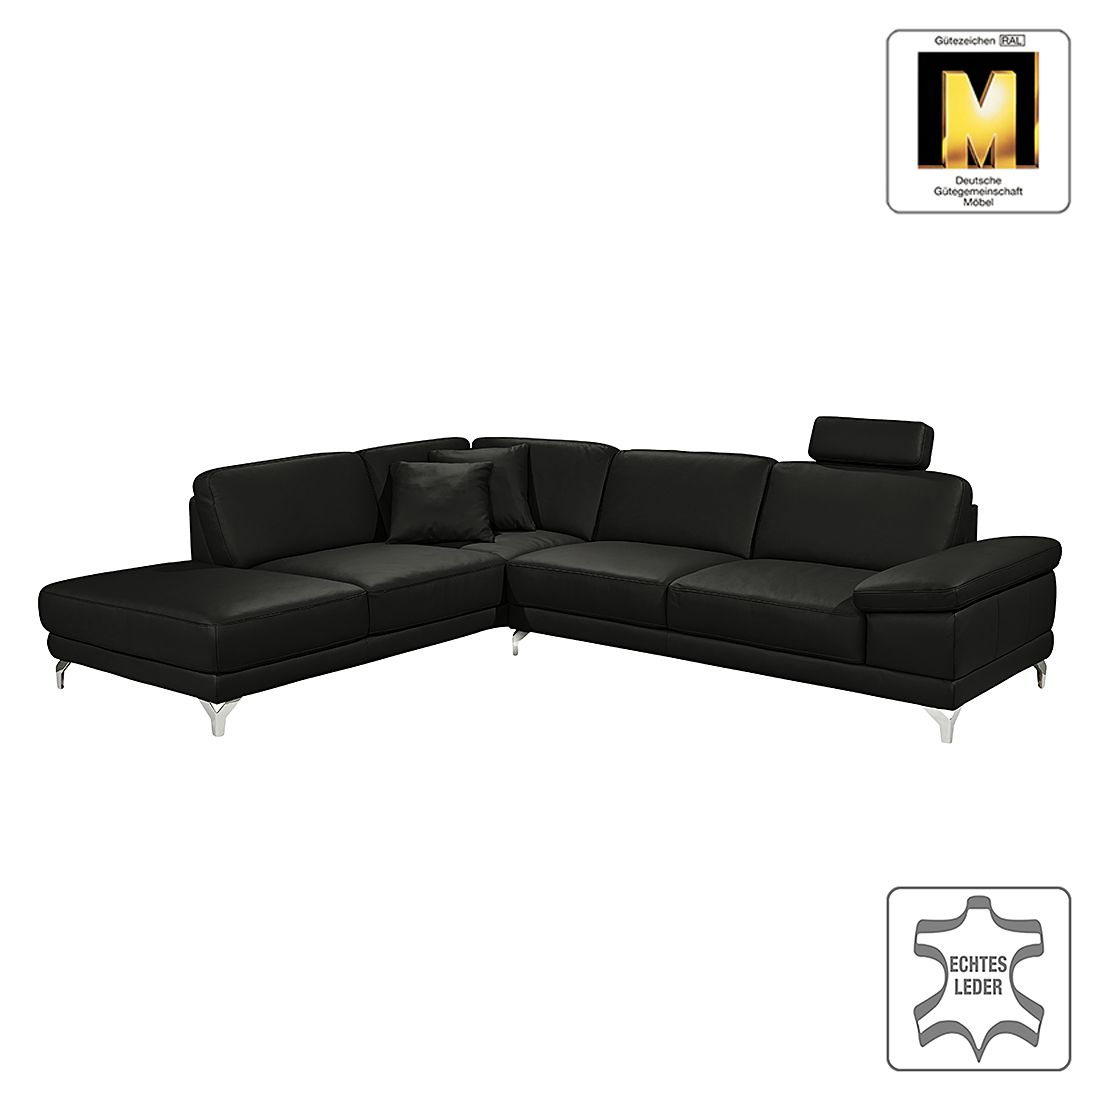 ecksofa casual line echtleder longchair ottomane davorstehend links verstellbare armlehnen. Black Bedroom Furniture Sets. Home Design Ideas